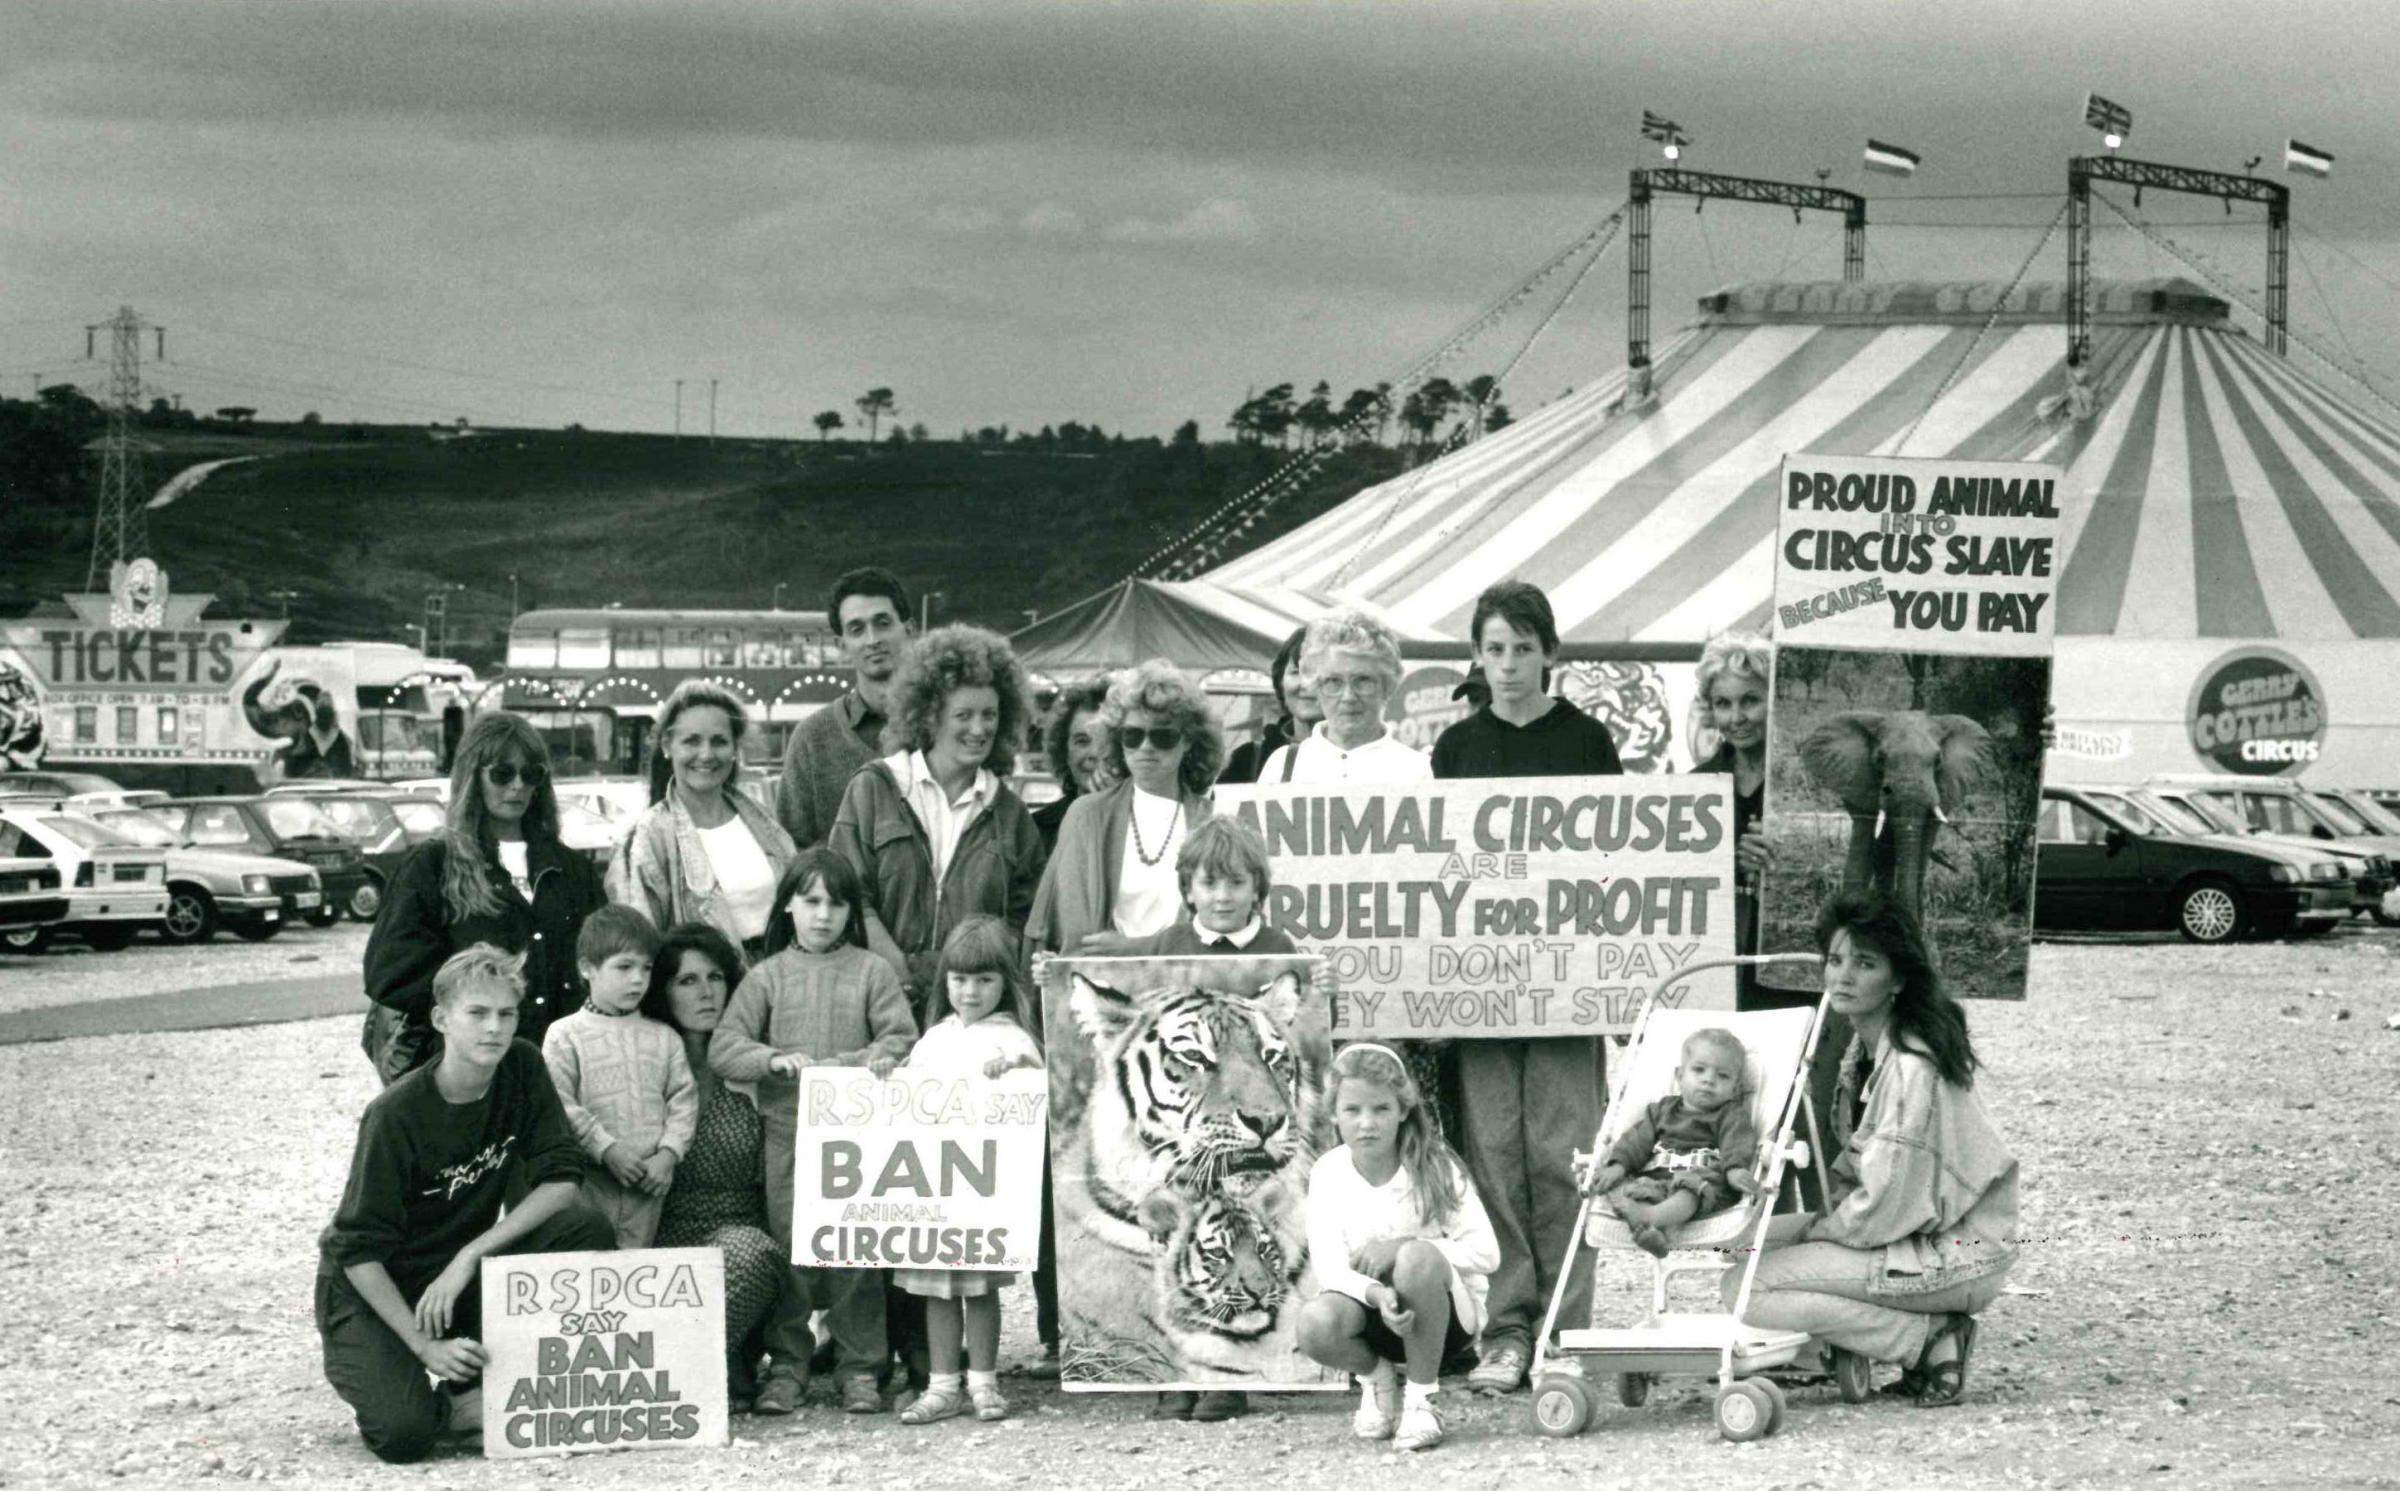 Residents protest against the use of animals outside Gerry Cottle's Circus in Tower Park in August 1990. Picture: Bournemouth Daily Echo.